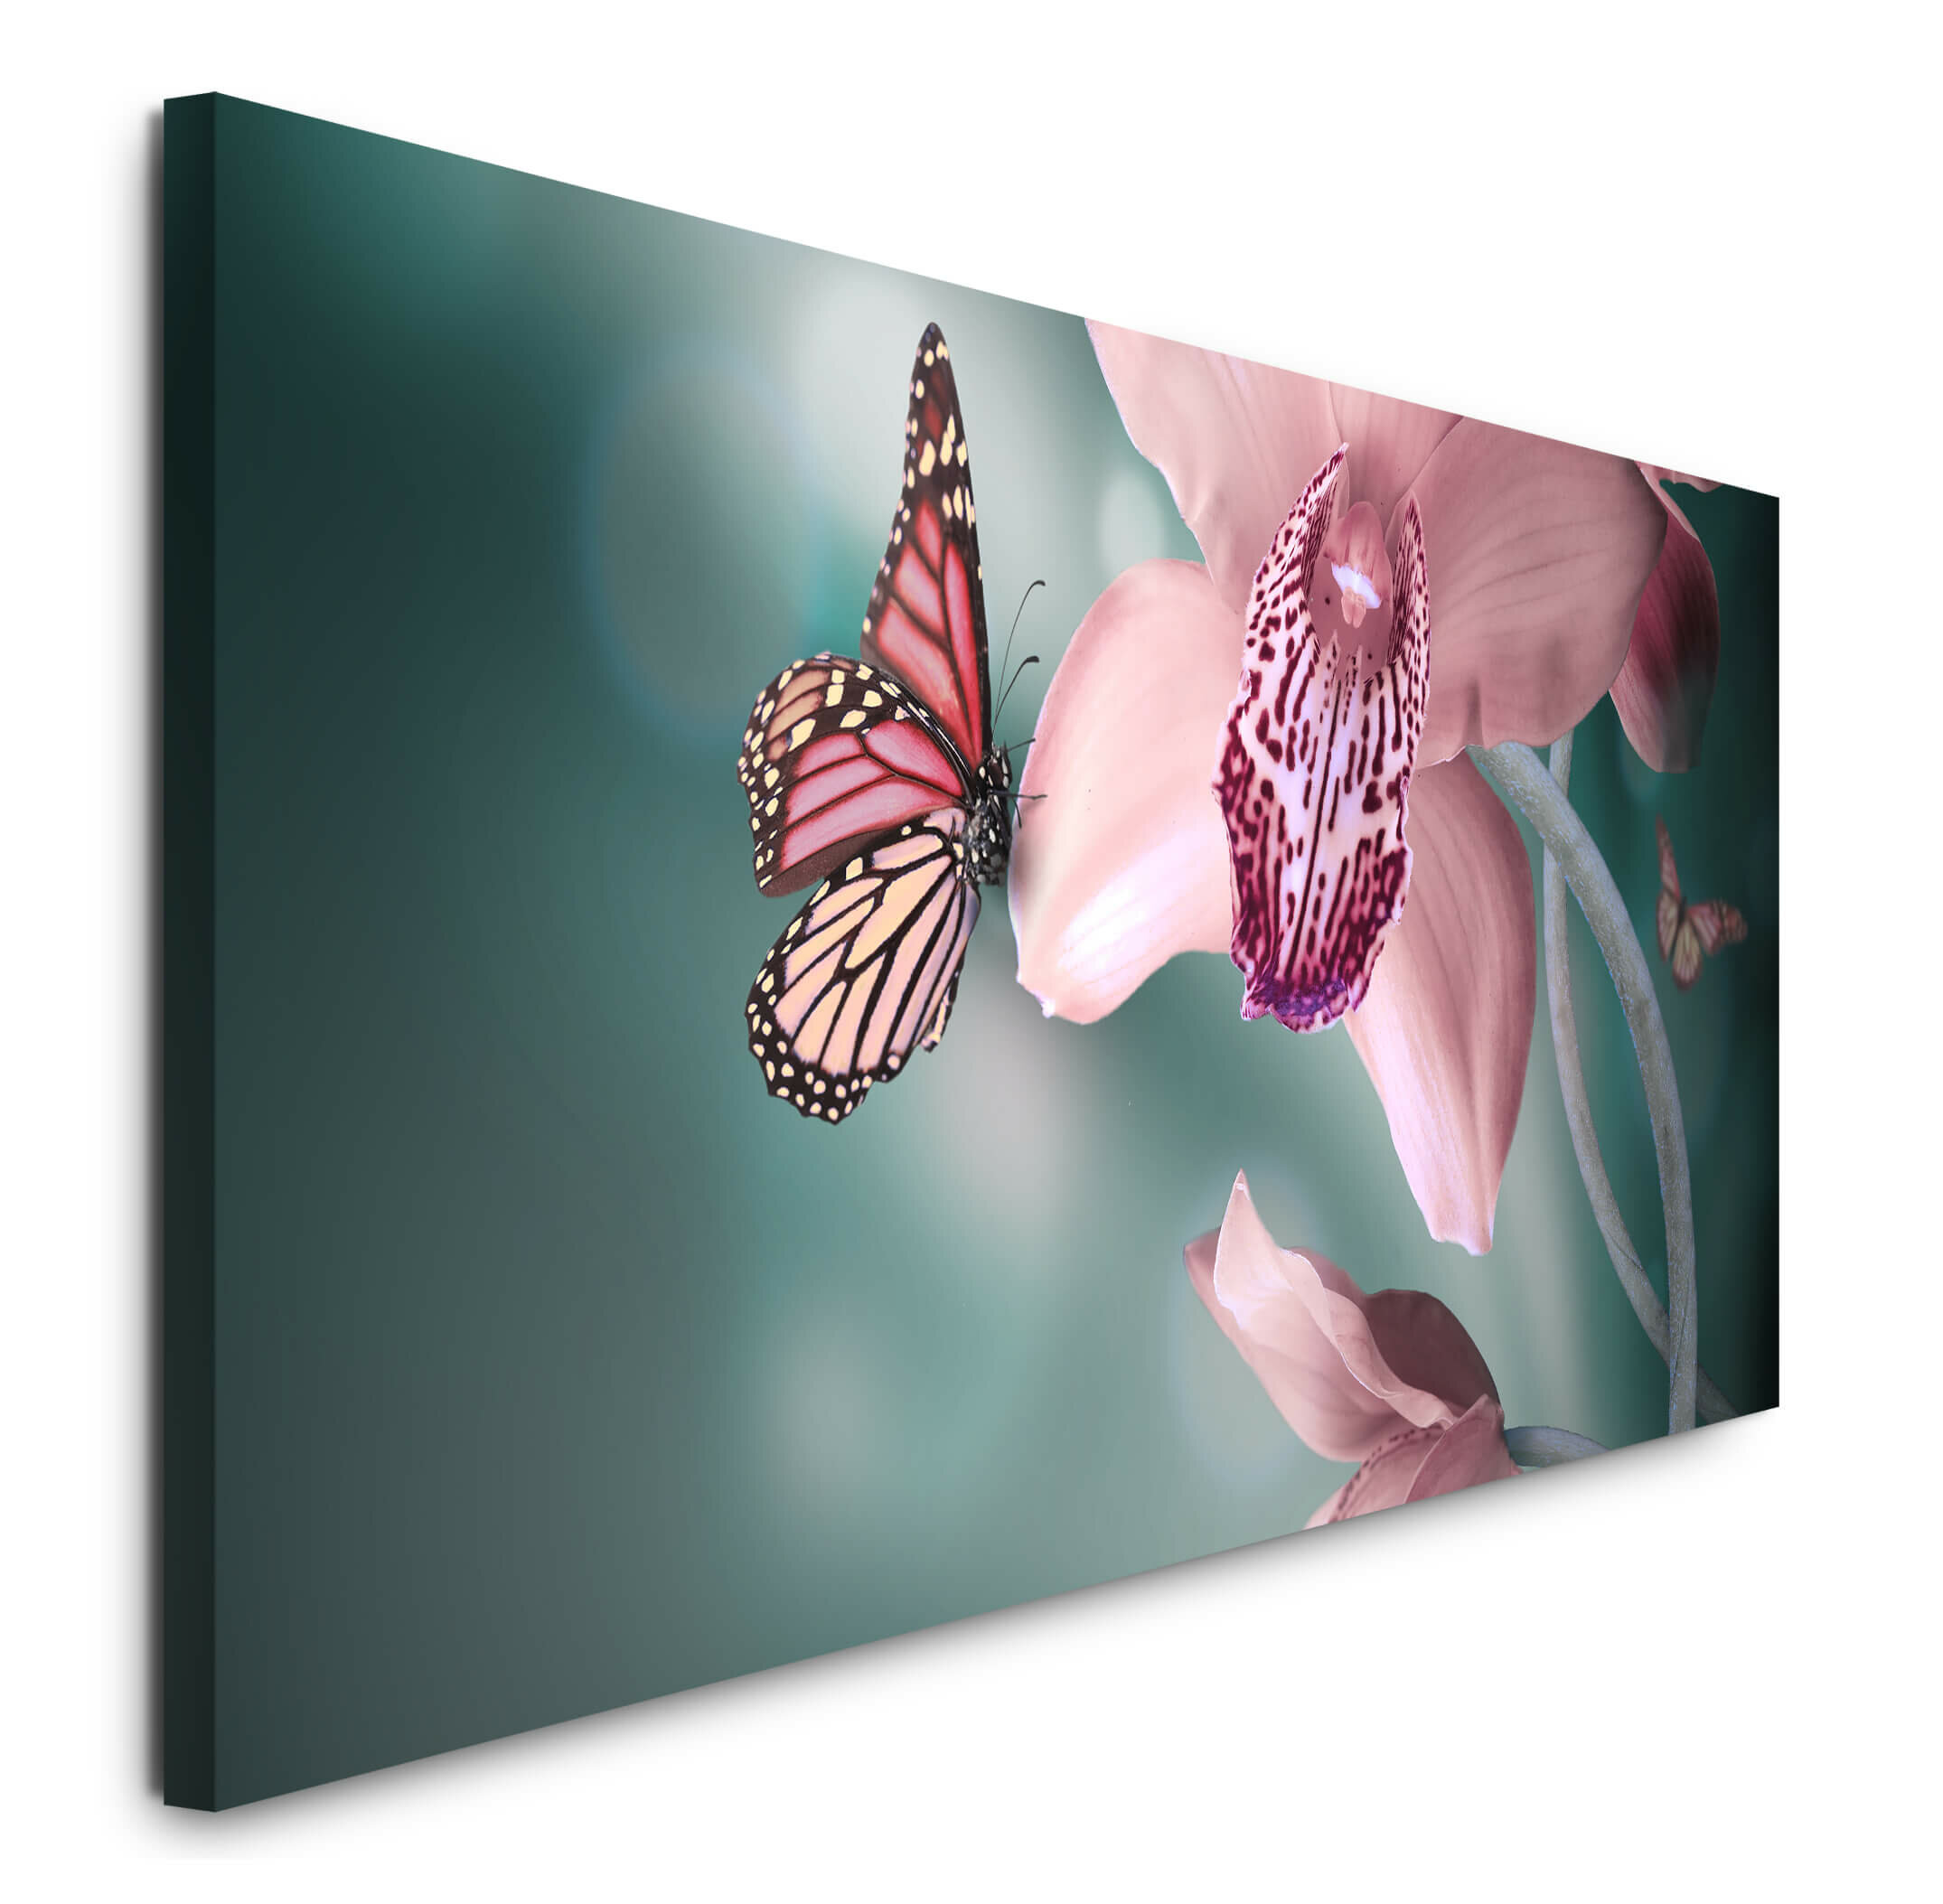 East Urban Home Flower With Butterfly Photographic Art Print On Canvas Wayfair Co Uk